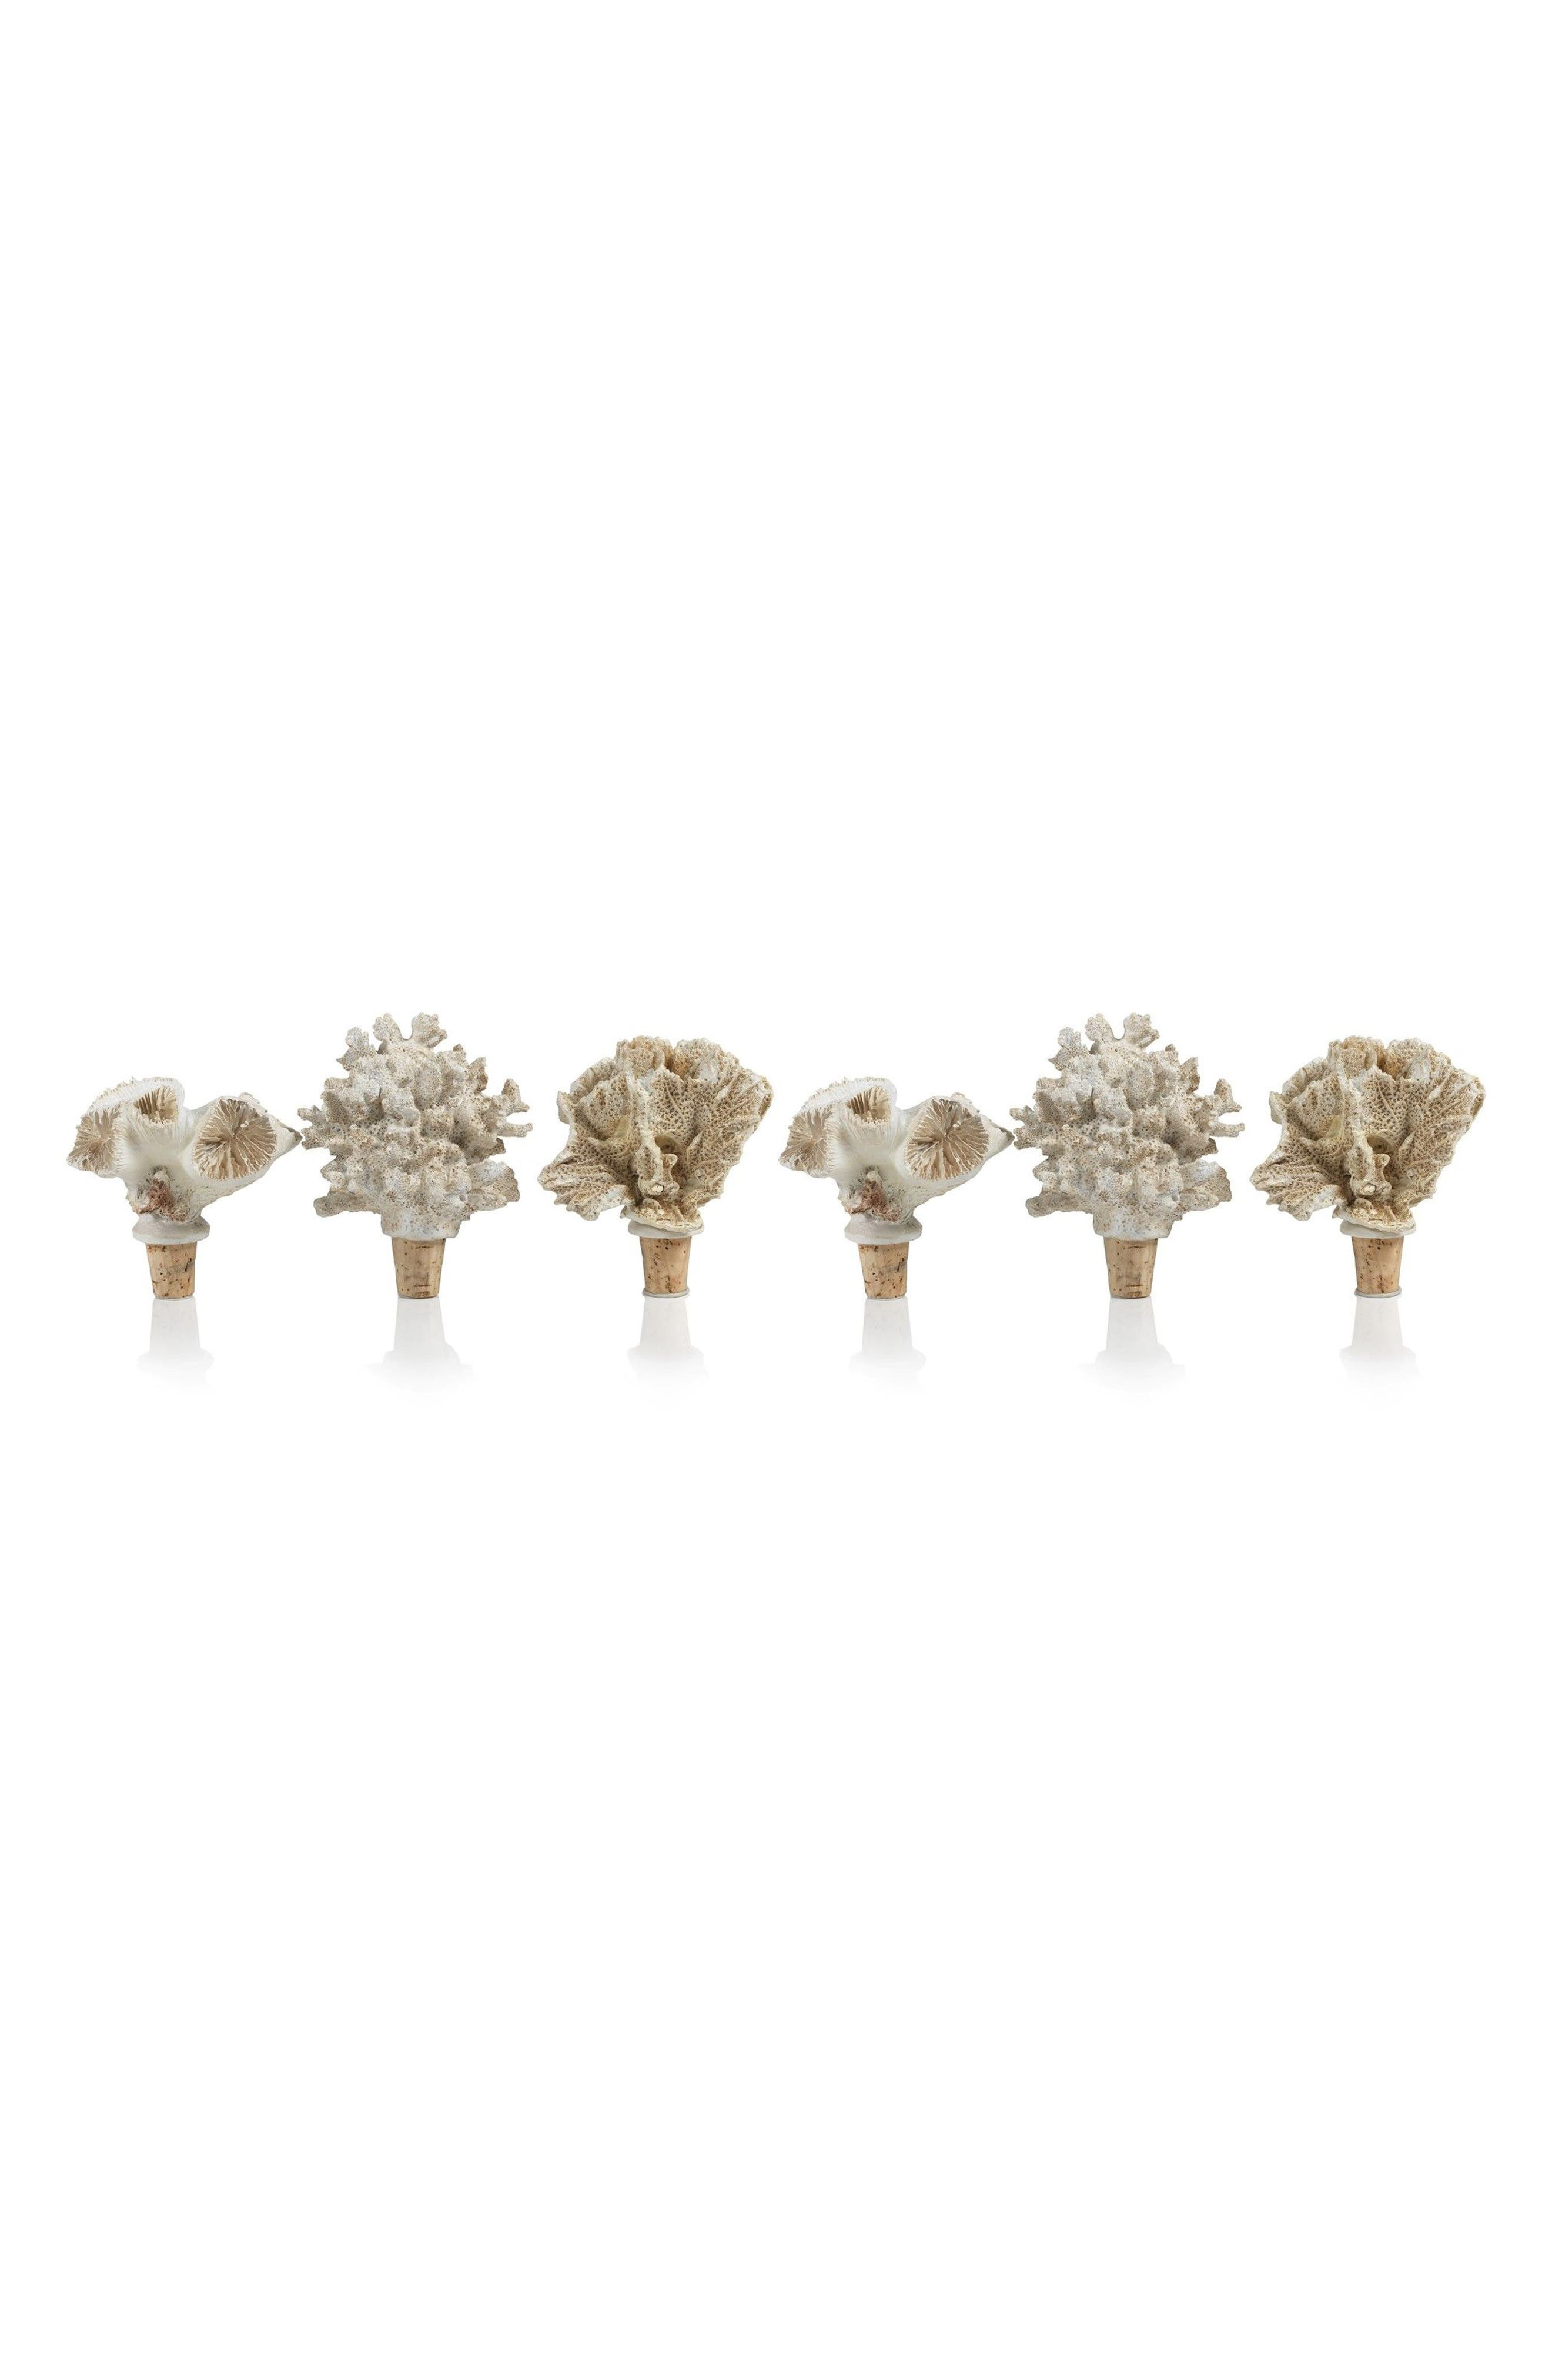 Sea Coral Set of 6 Bottle Stoppers,                         Main,                         color, Off-White